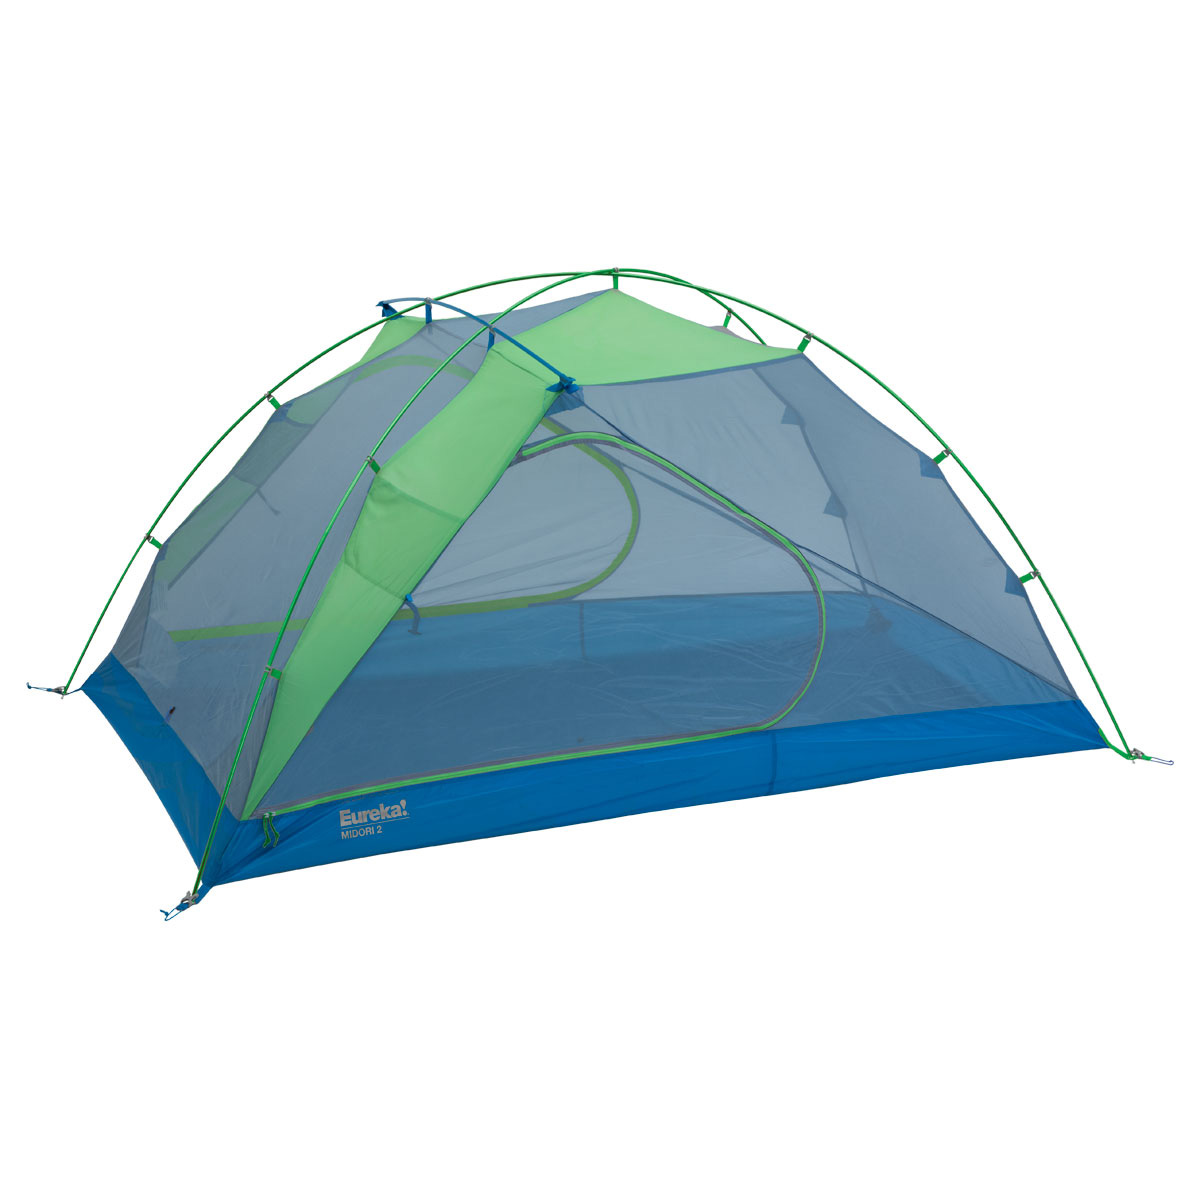 the best budget two person tent - Eureka! Midori 2Ready why→